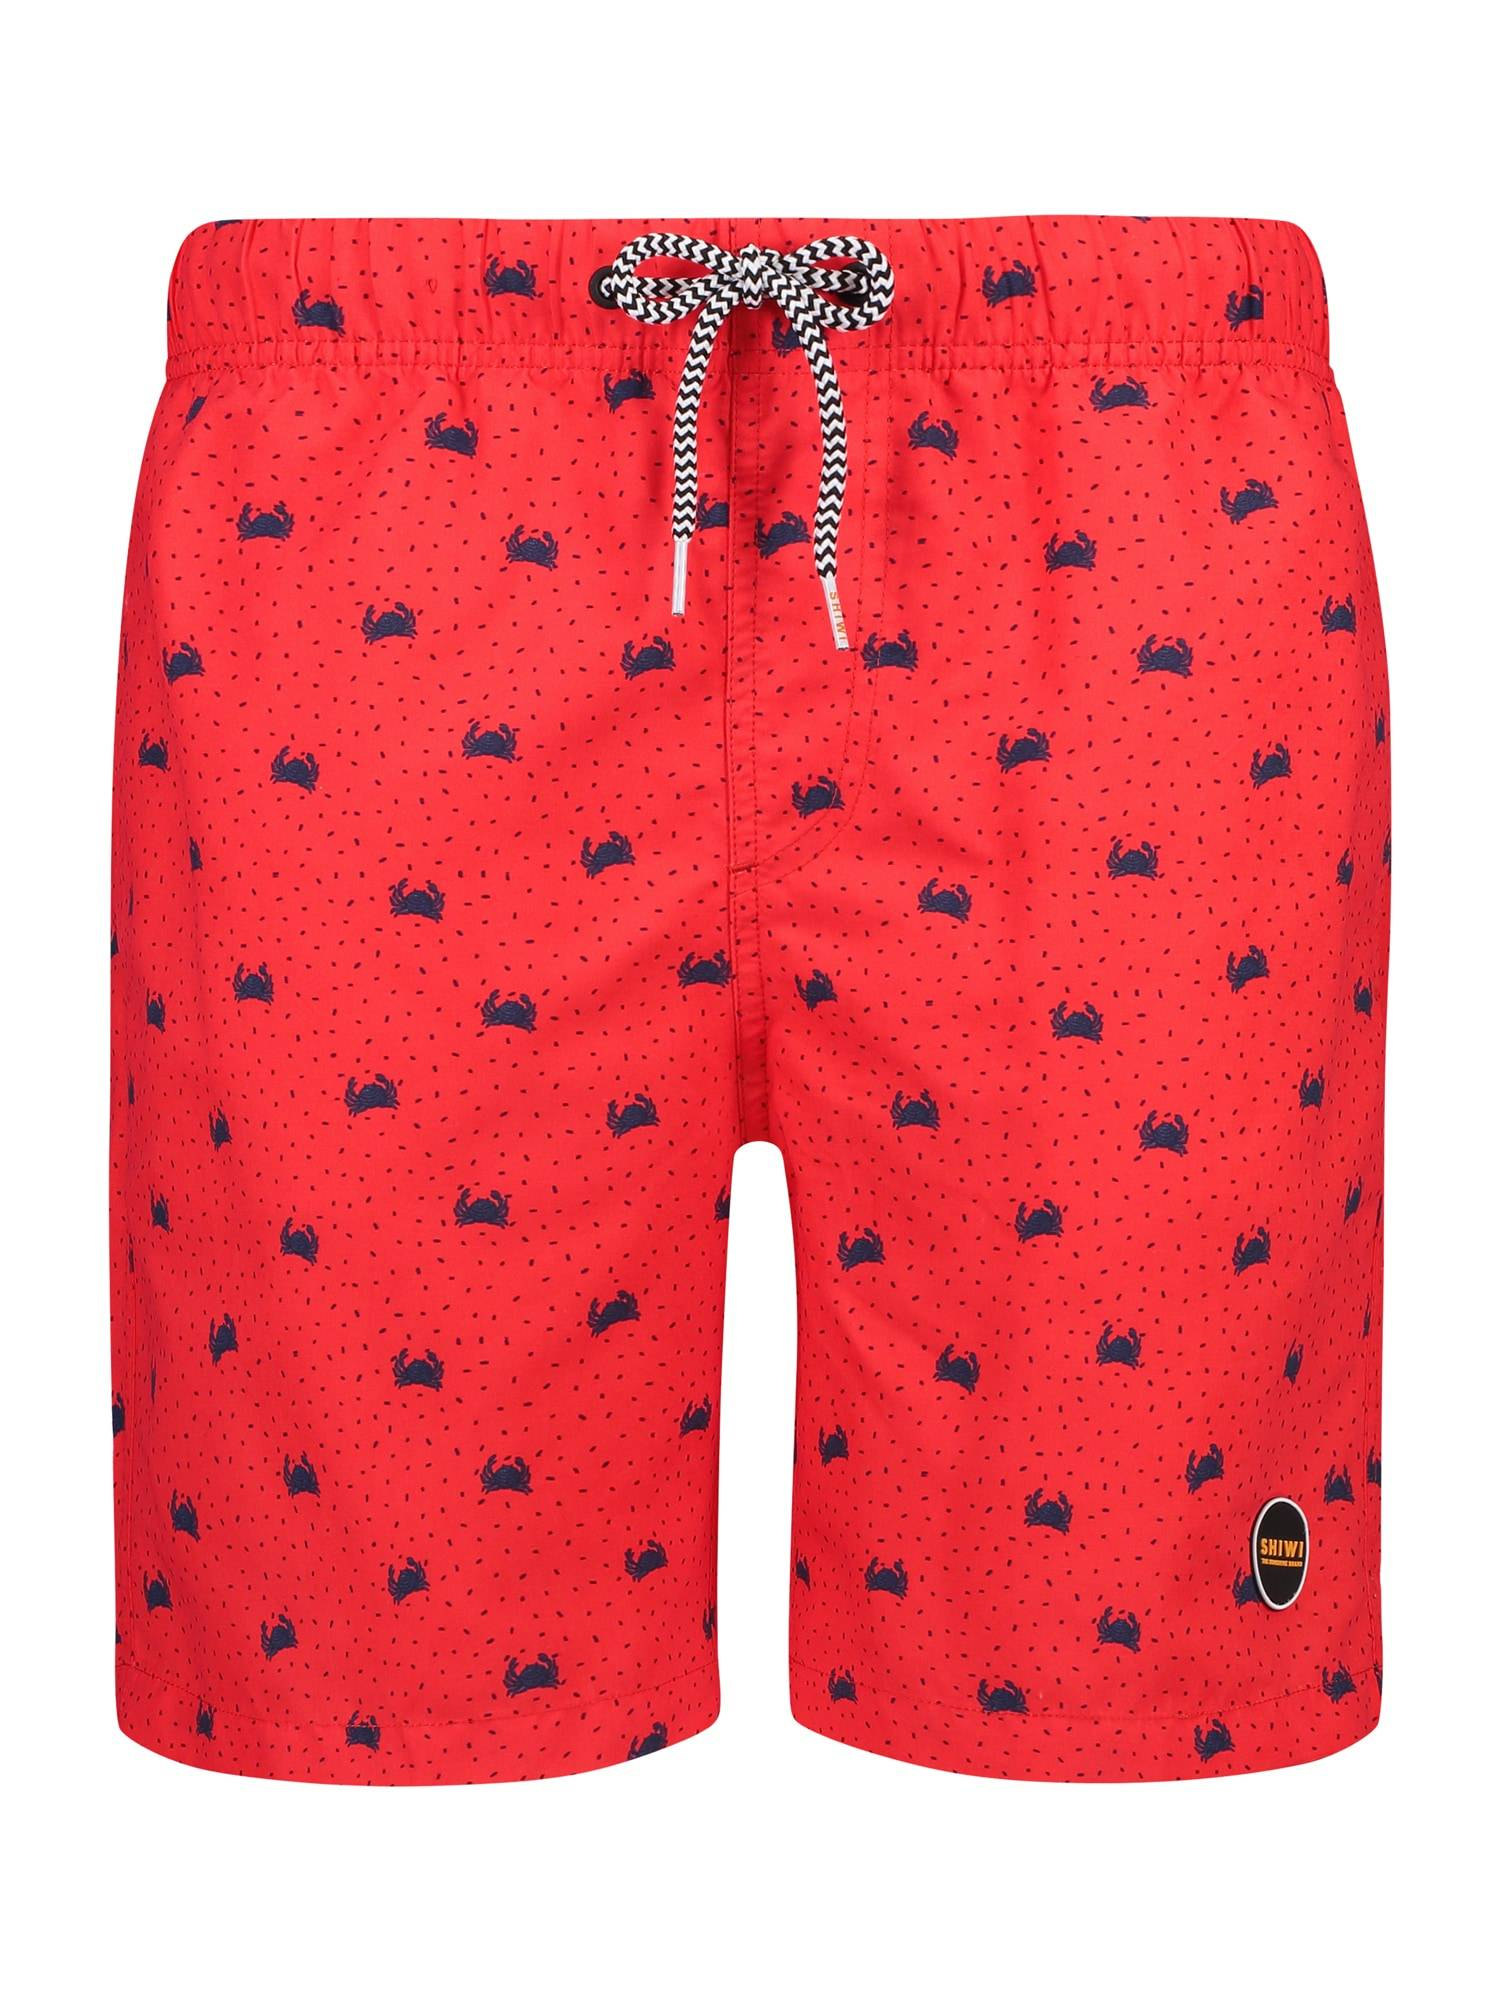 Shiwi Boardshorts 'Crabby'  - Rouge - Taille: 2XL - male